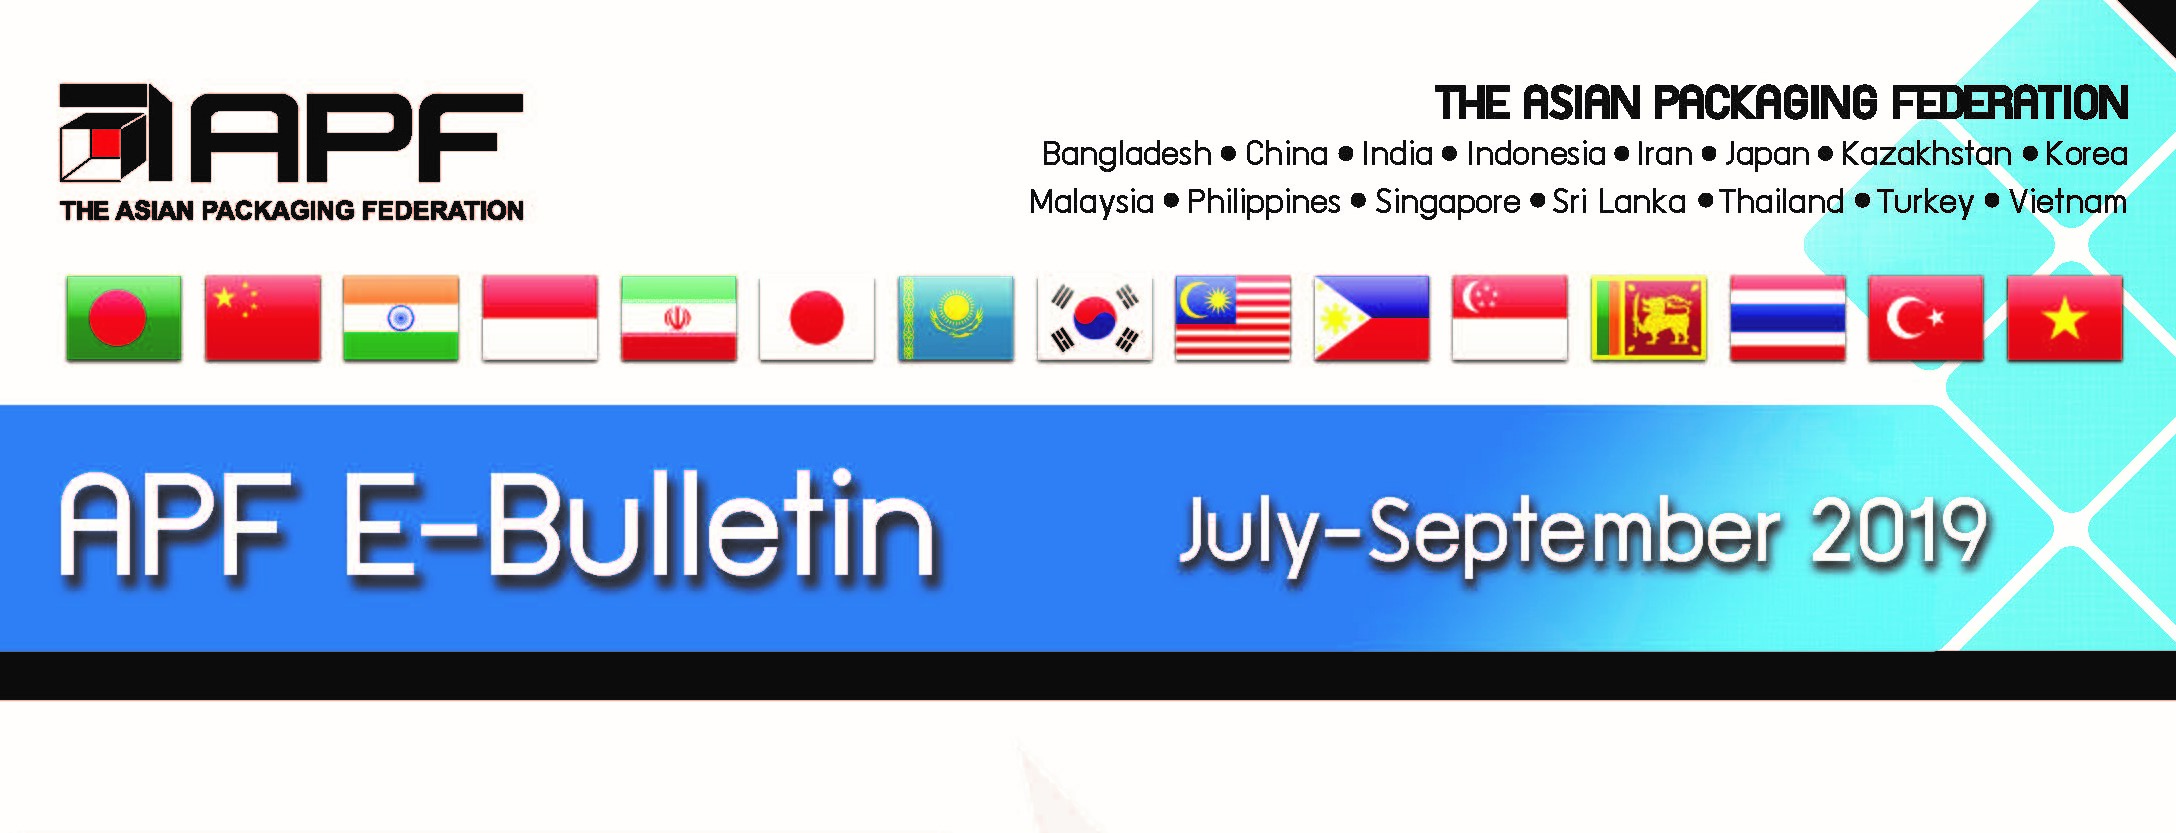 ASIAN PACKAGING FEDERATION